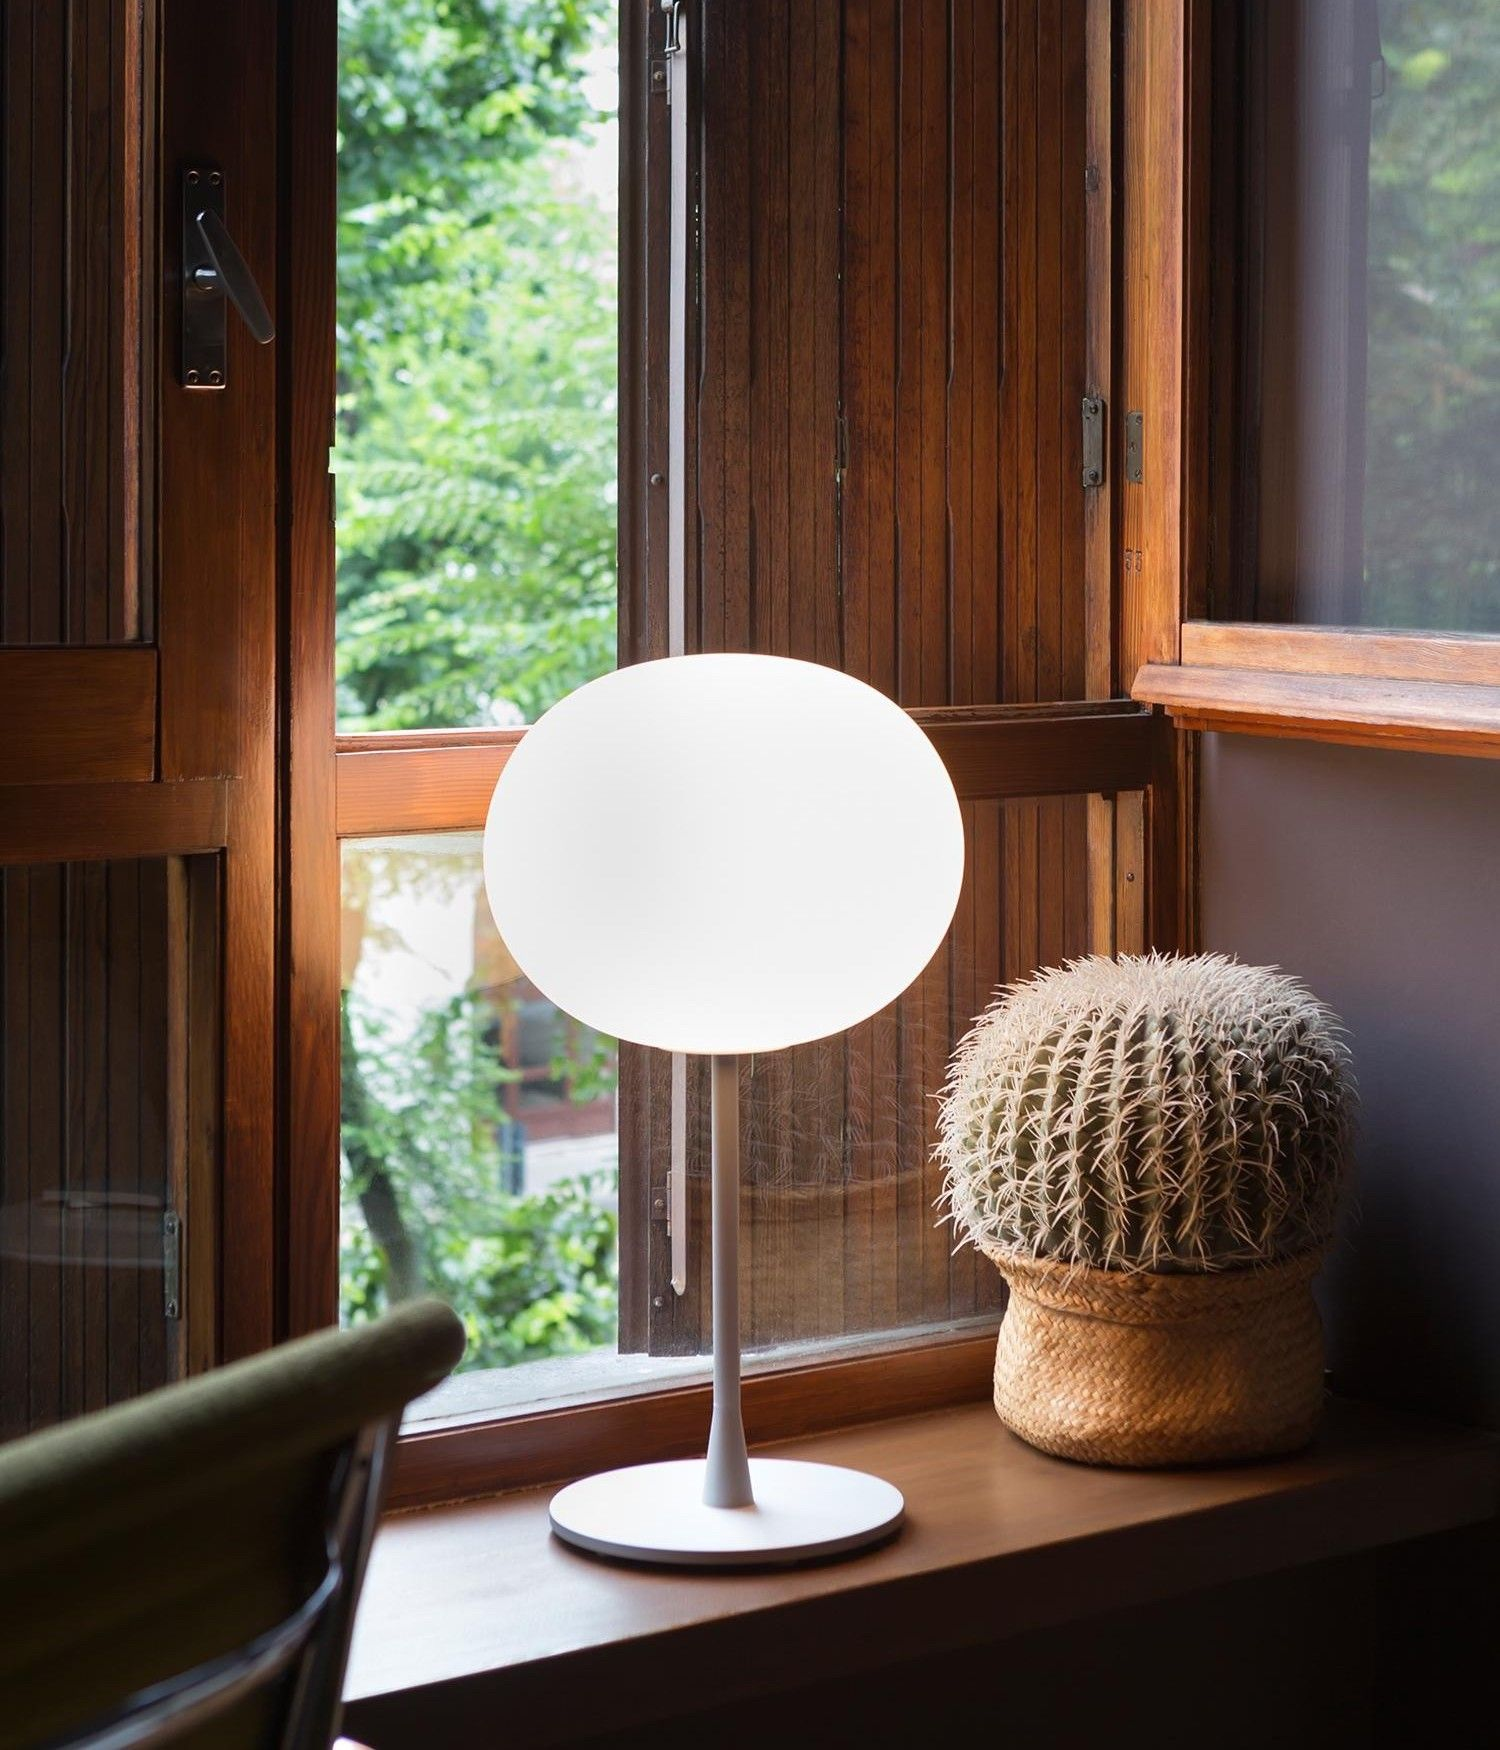 Glo Ball Designed To Invoke The Radiant Calmness Of A Full Moon Jasper Morrison S Glo Ball Lamp Collection For Flos With Images Flos Glo Ball Table Lamp Table Lamp Flos